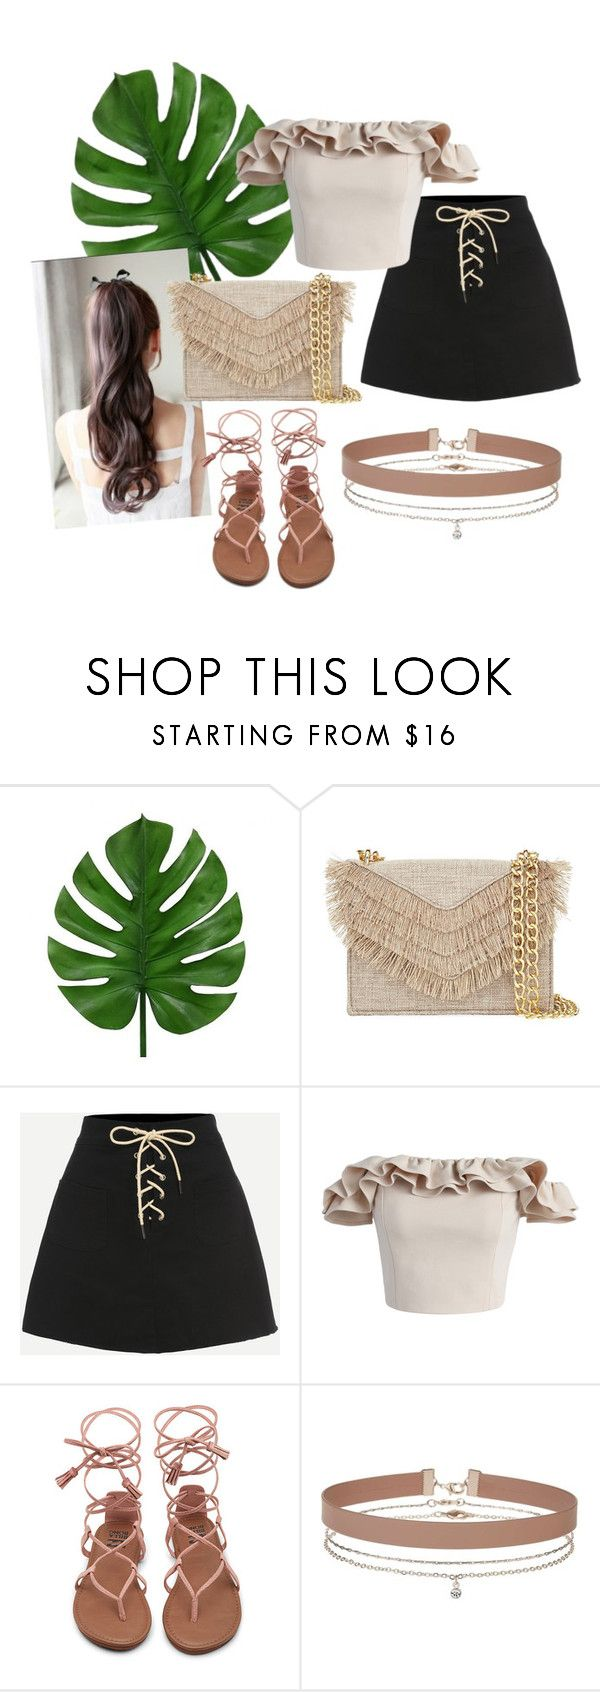 sweet peachy look by patsilvarte-blog on Polyvore featuring Chicwish, Cynthia Rowley and Miss Selfridge